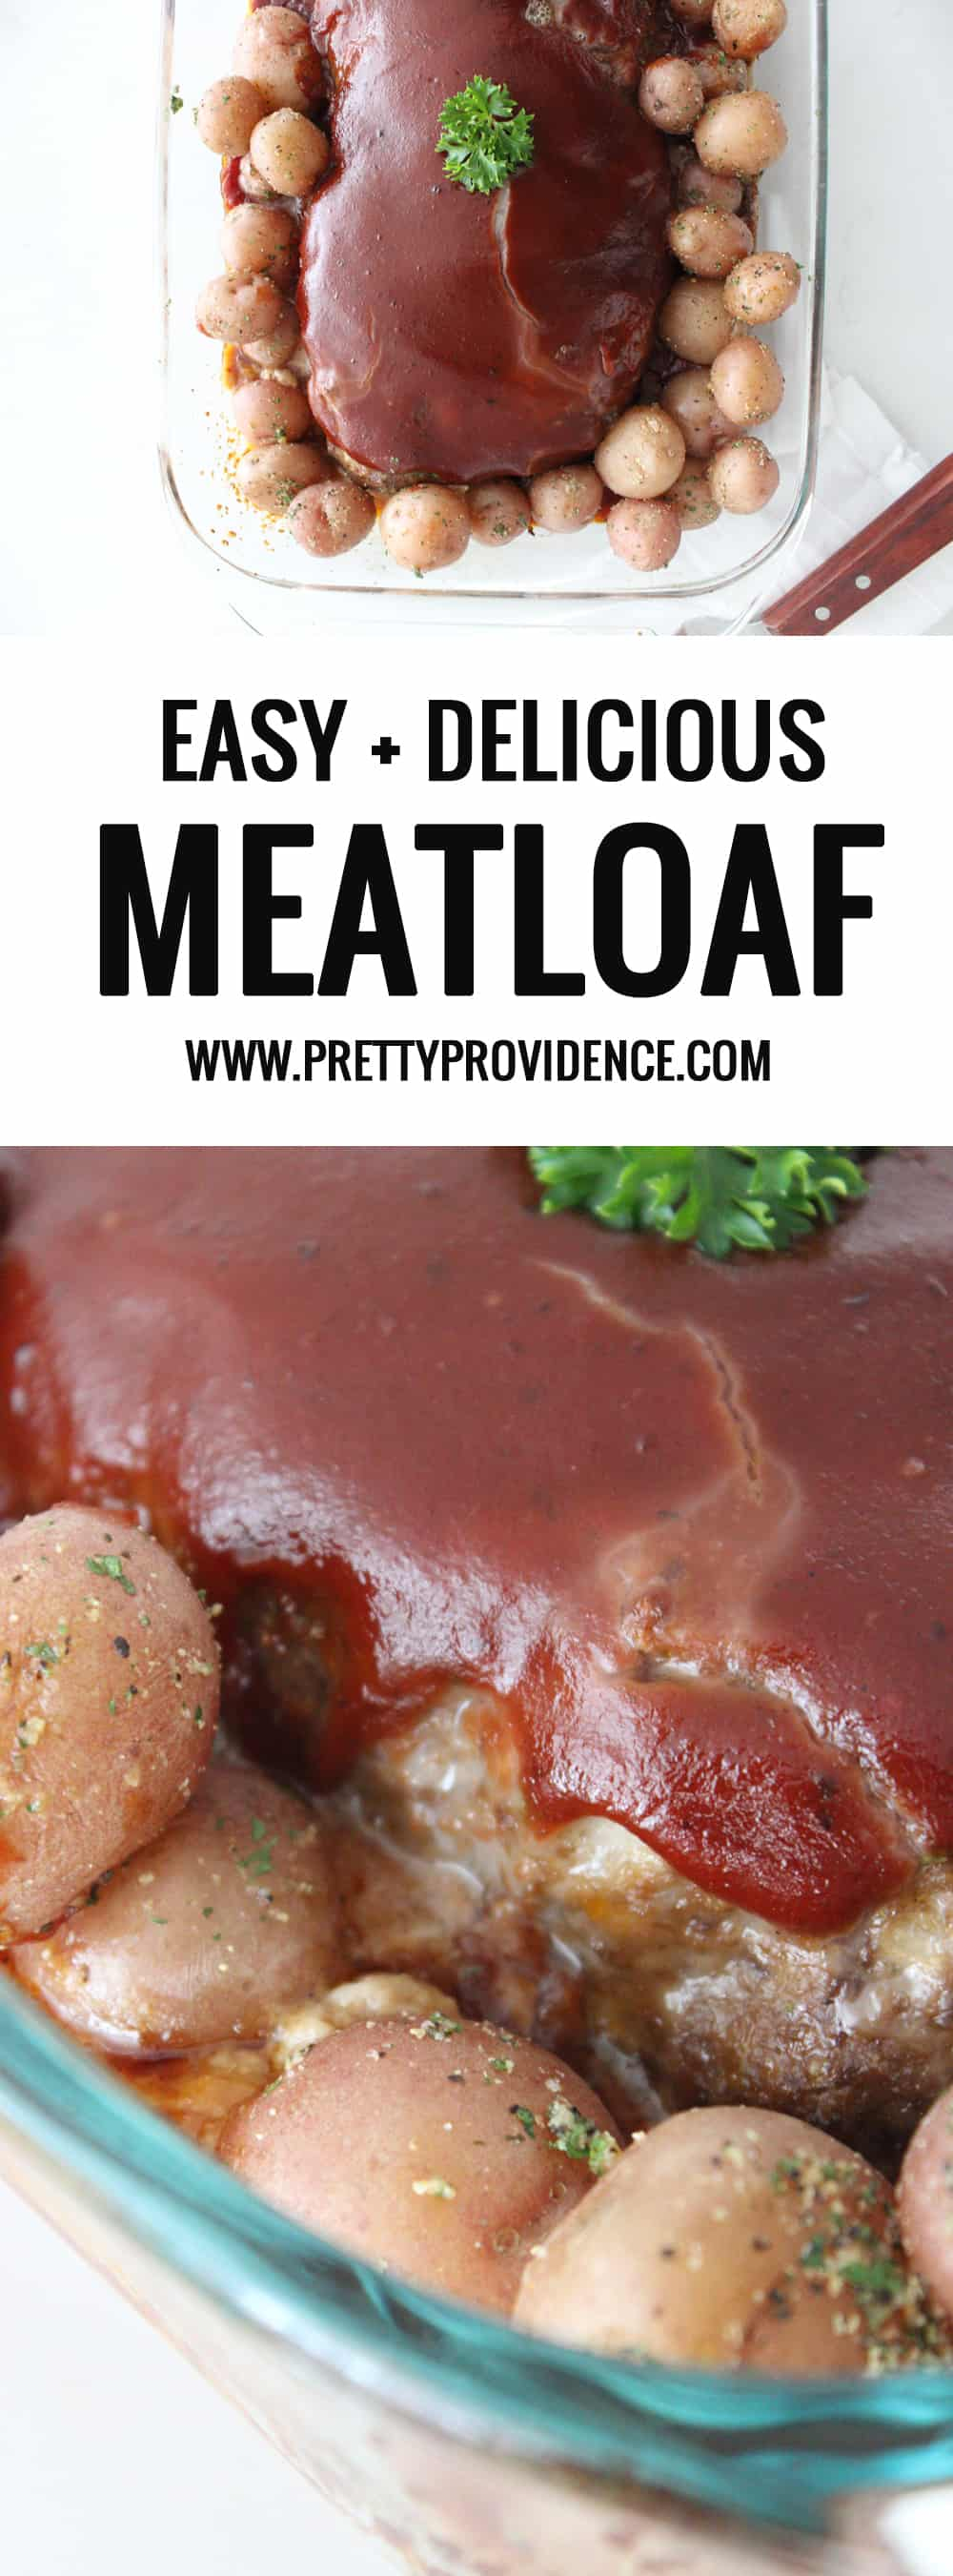 Totally obsessed with this classic meatloaf recipe! It's easy, delicious and always a crowd pleaser!